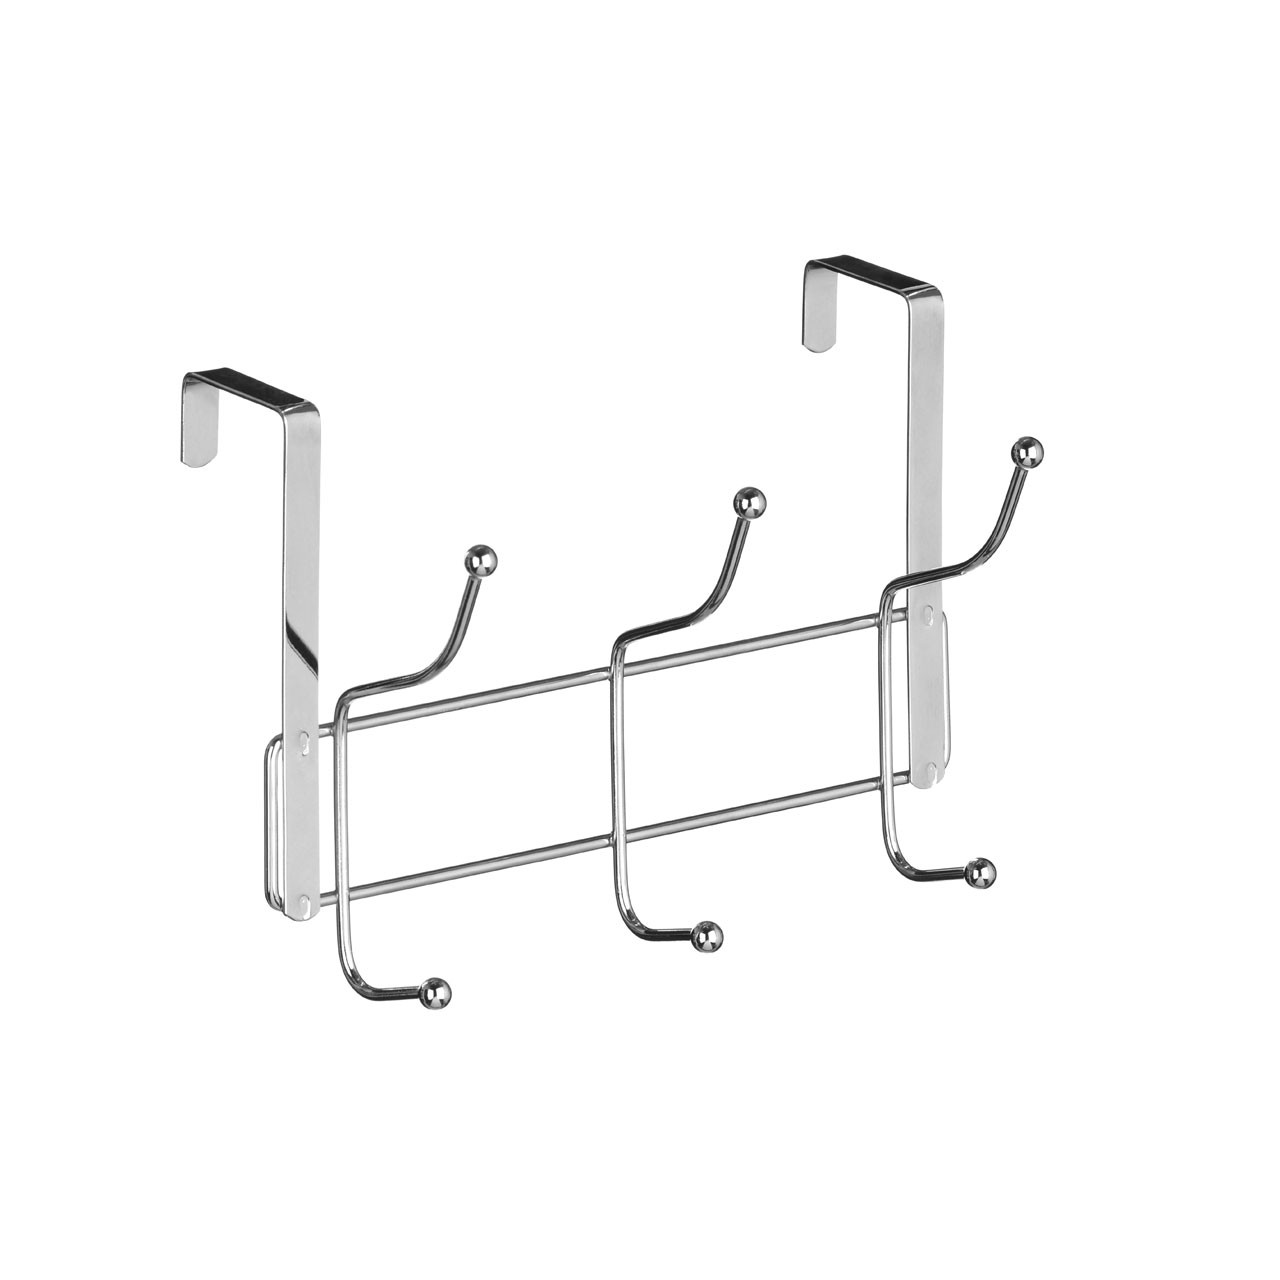 6 Hook Over Door Hanger - Chrome